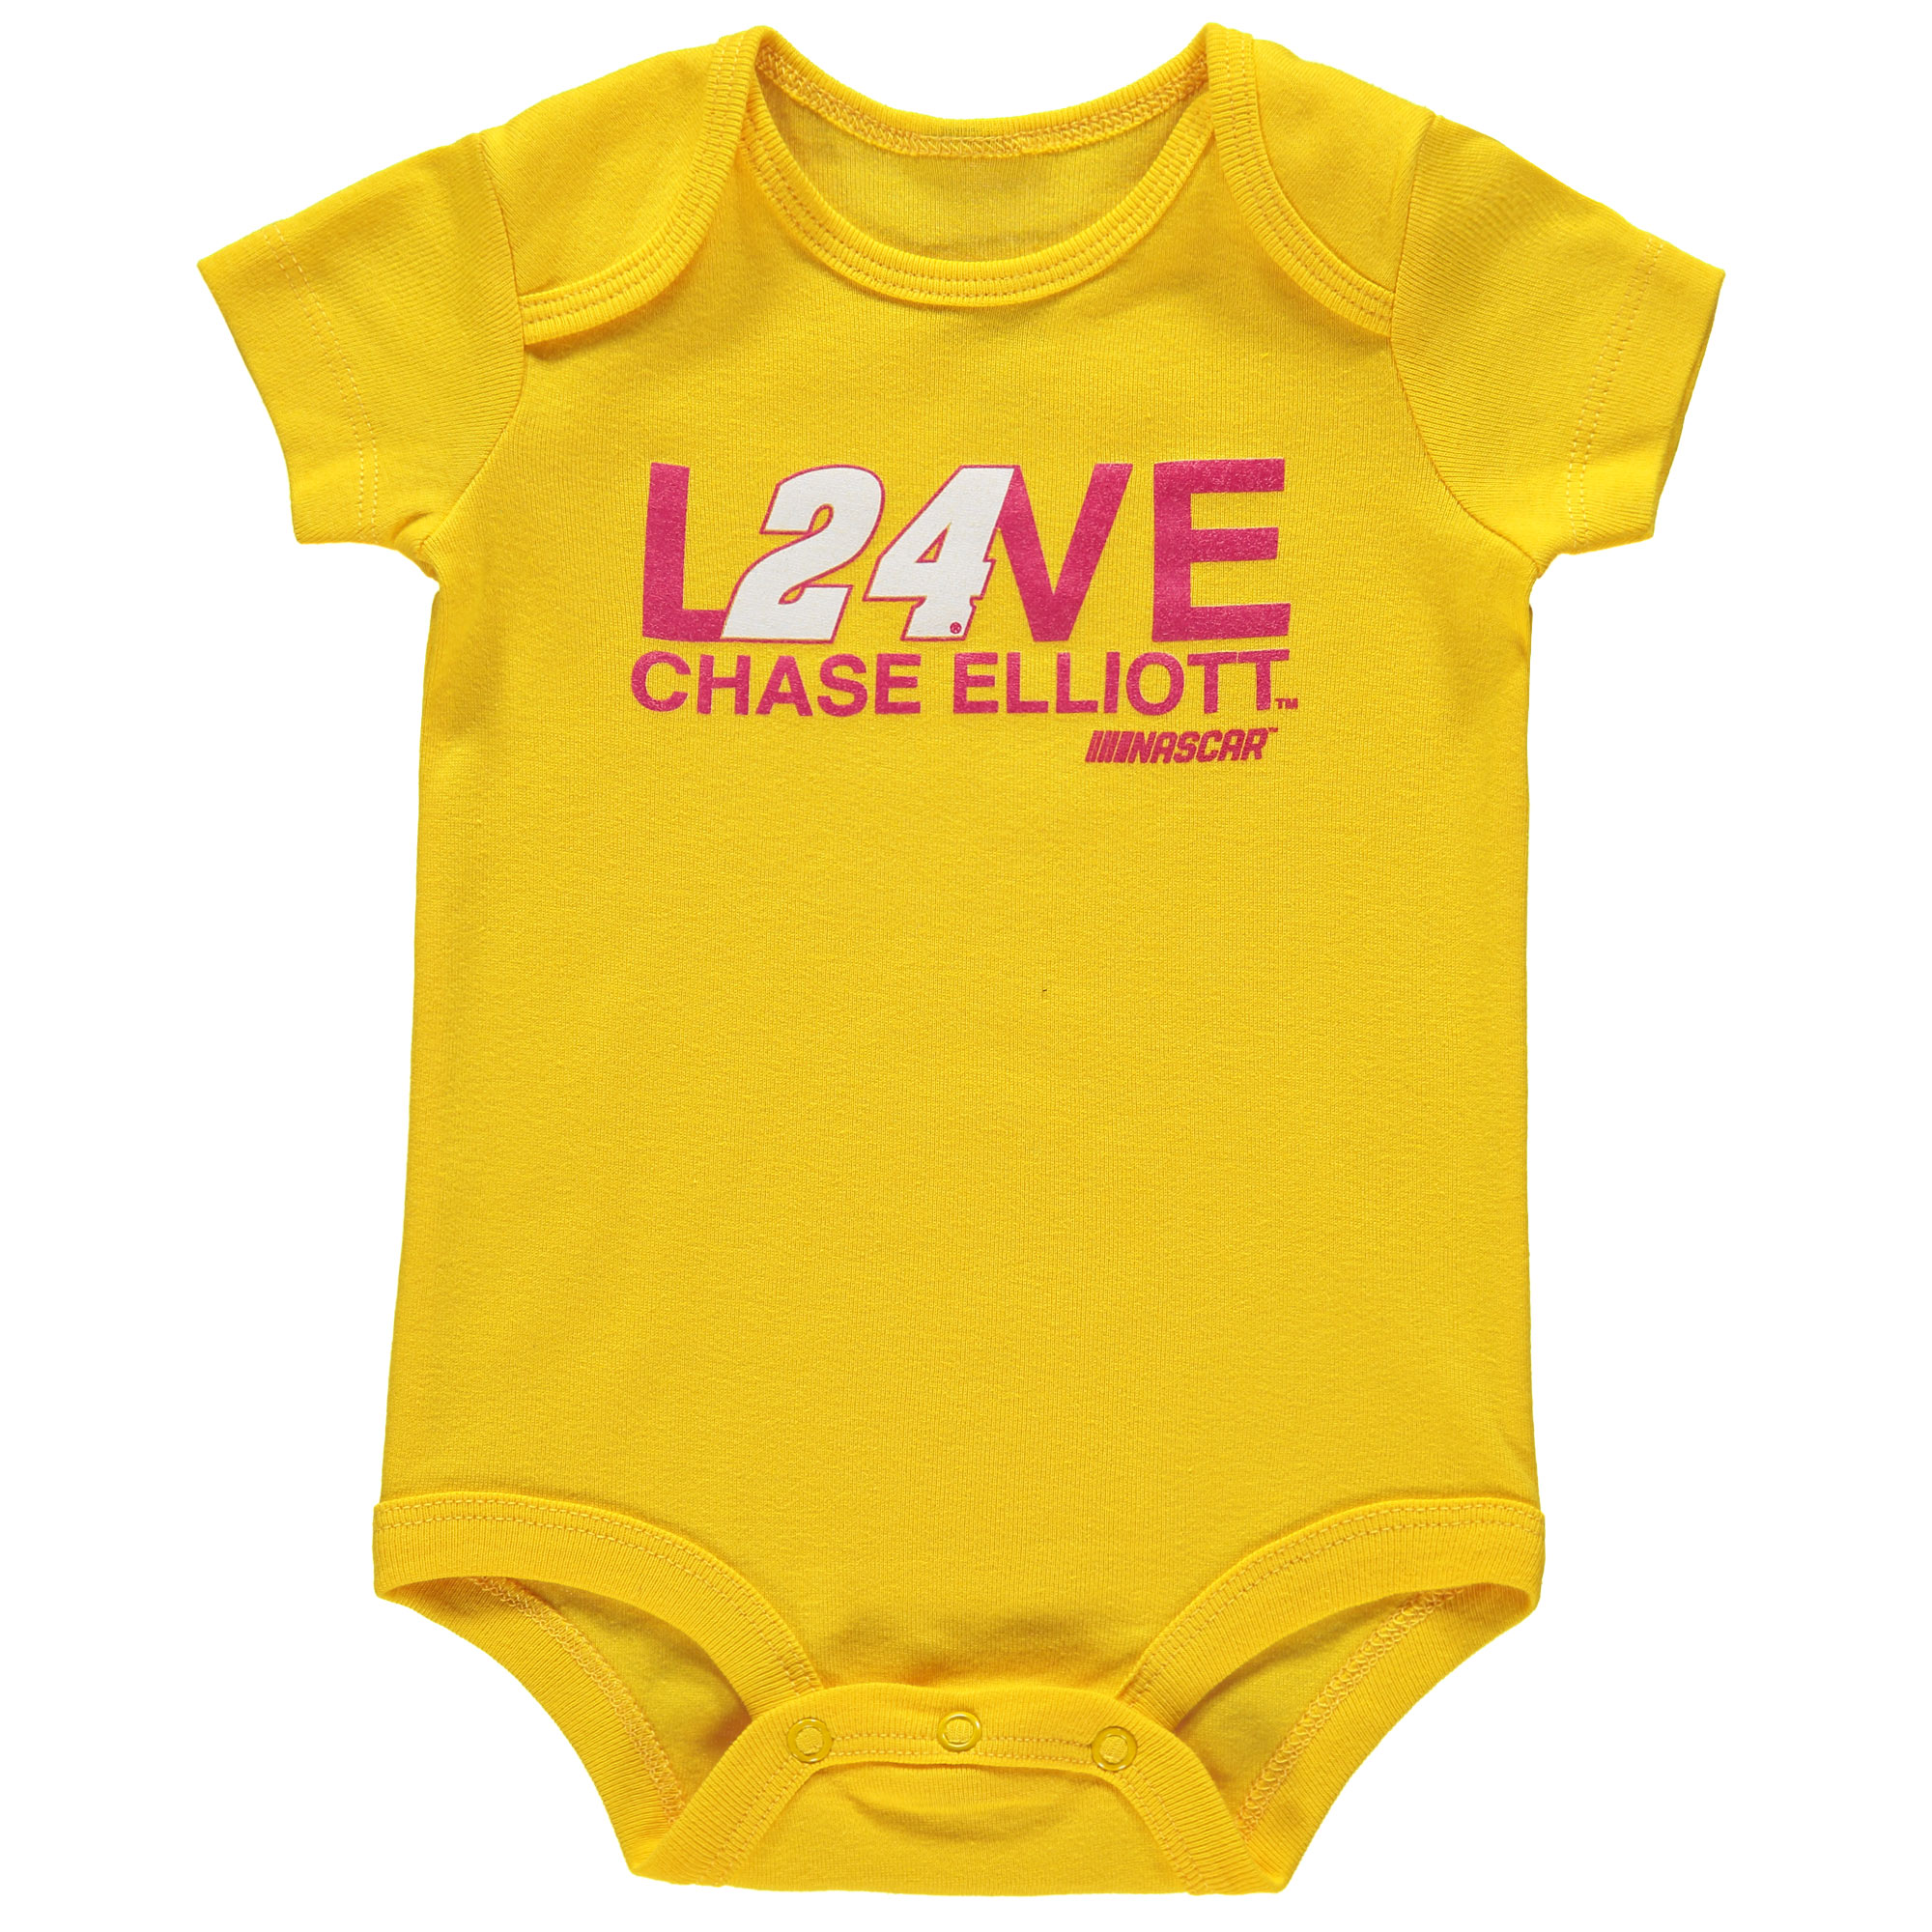 Chase Elliott Hendrick Motorsports Team Collection Girls Newborn & Infant Bodysuit - Yellow